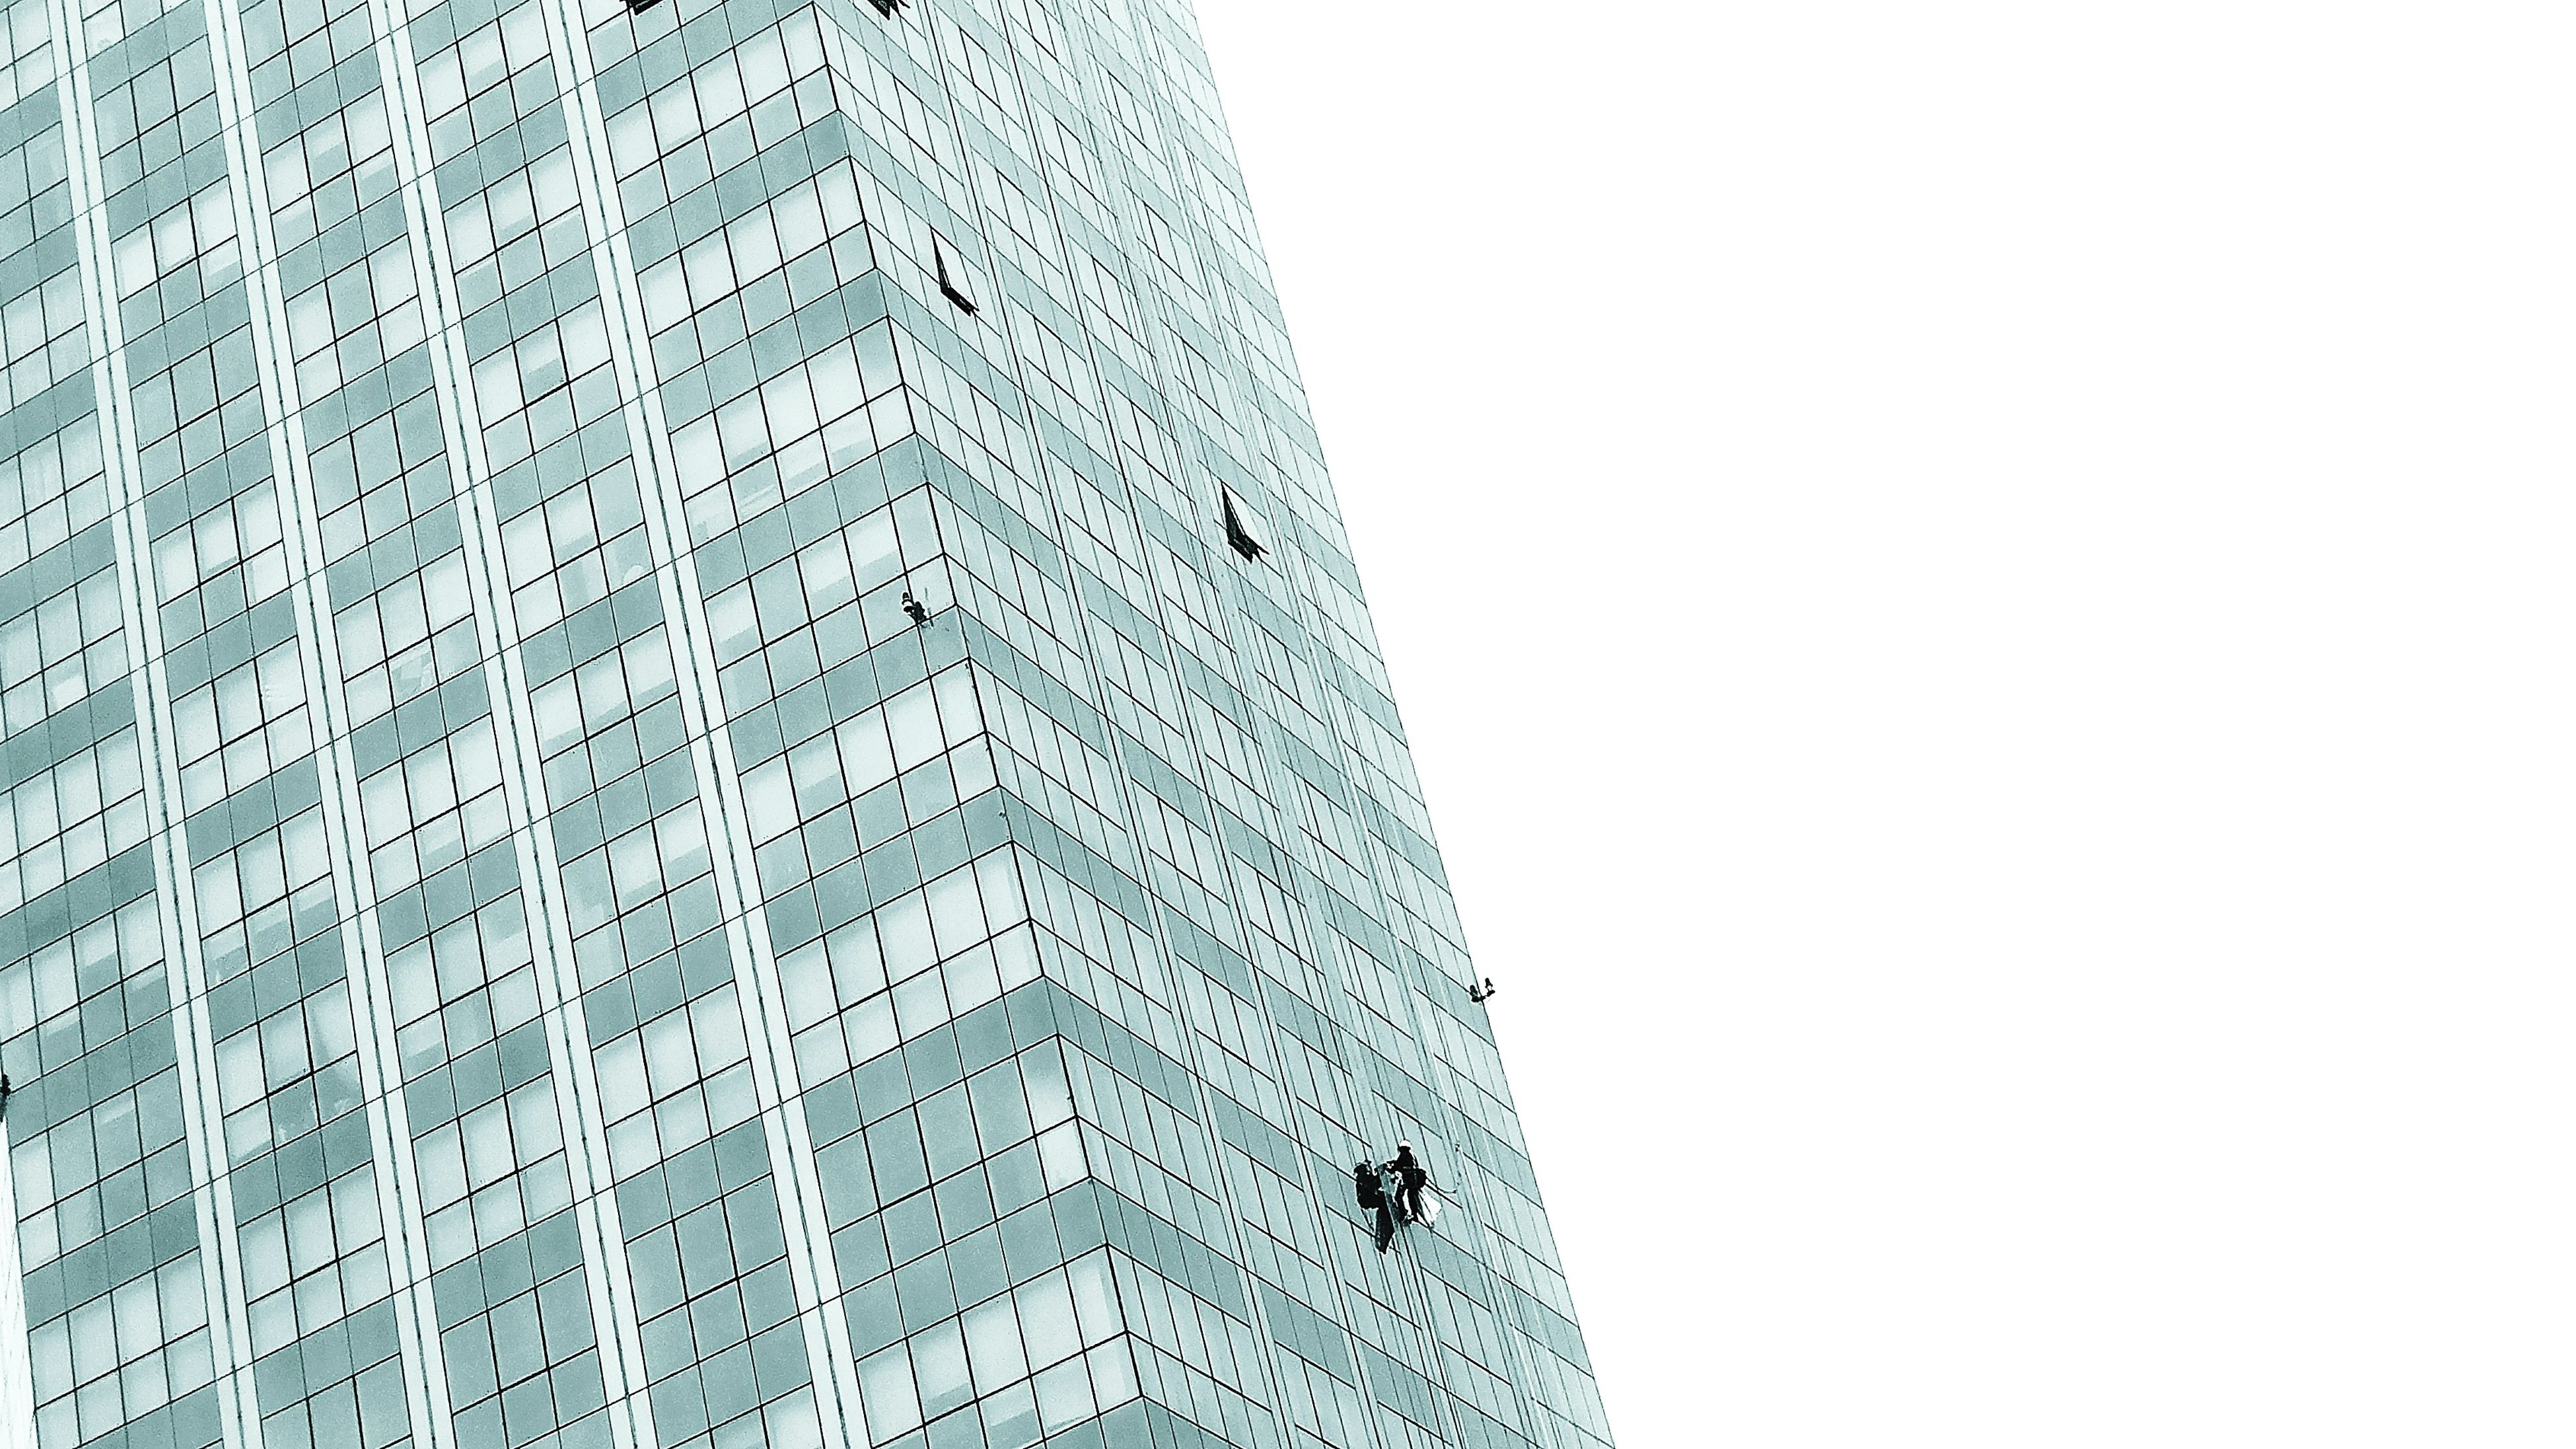 low angle view, pattern, architecture, building exterior, built structure, no people, white background, skyscraper, day, outdoors